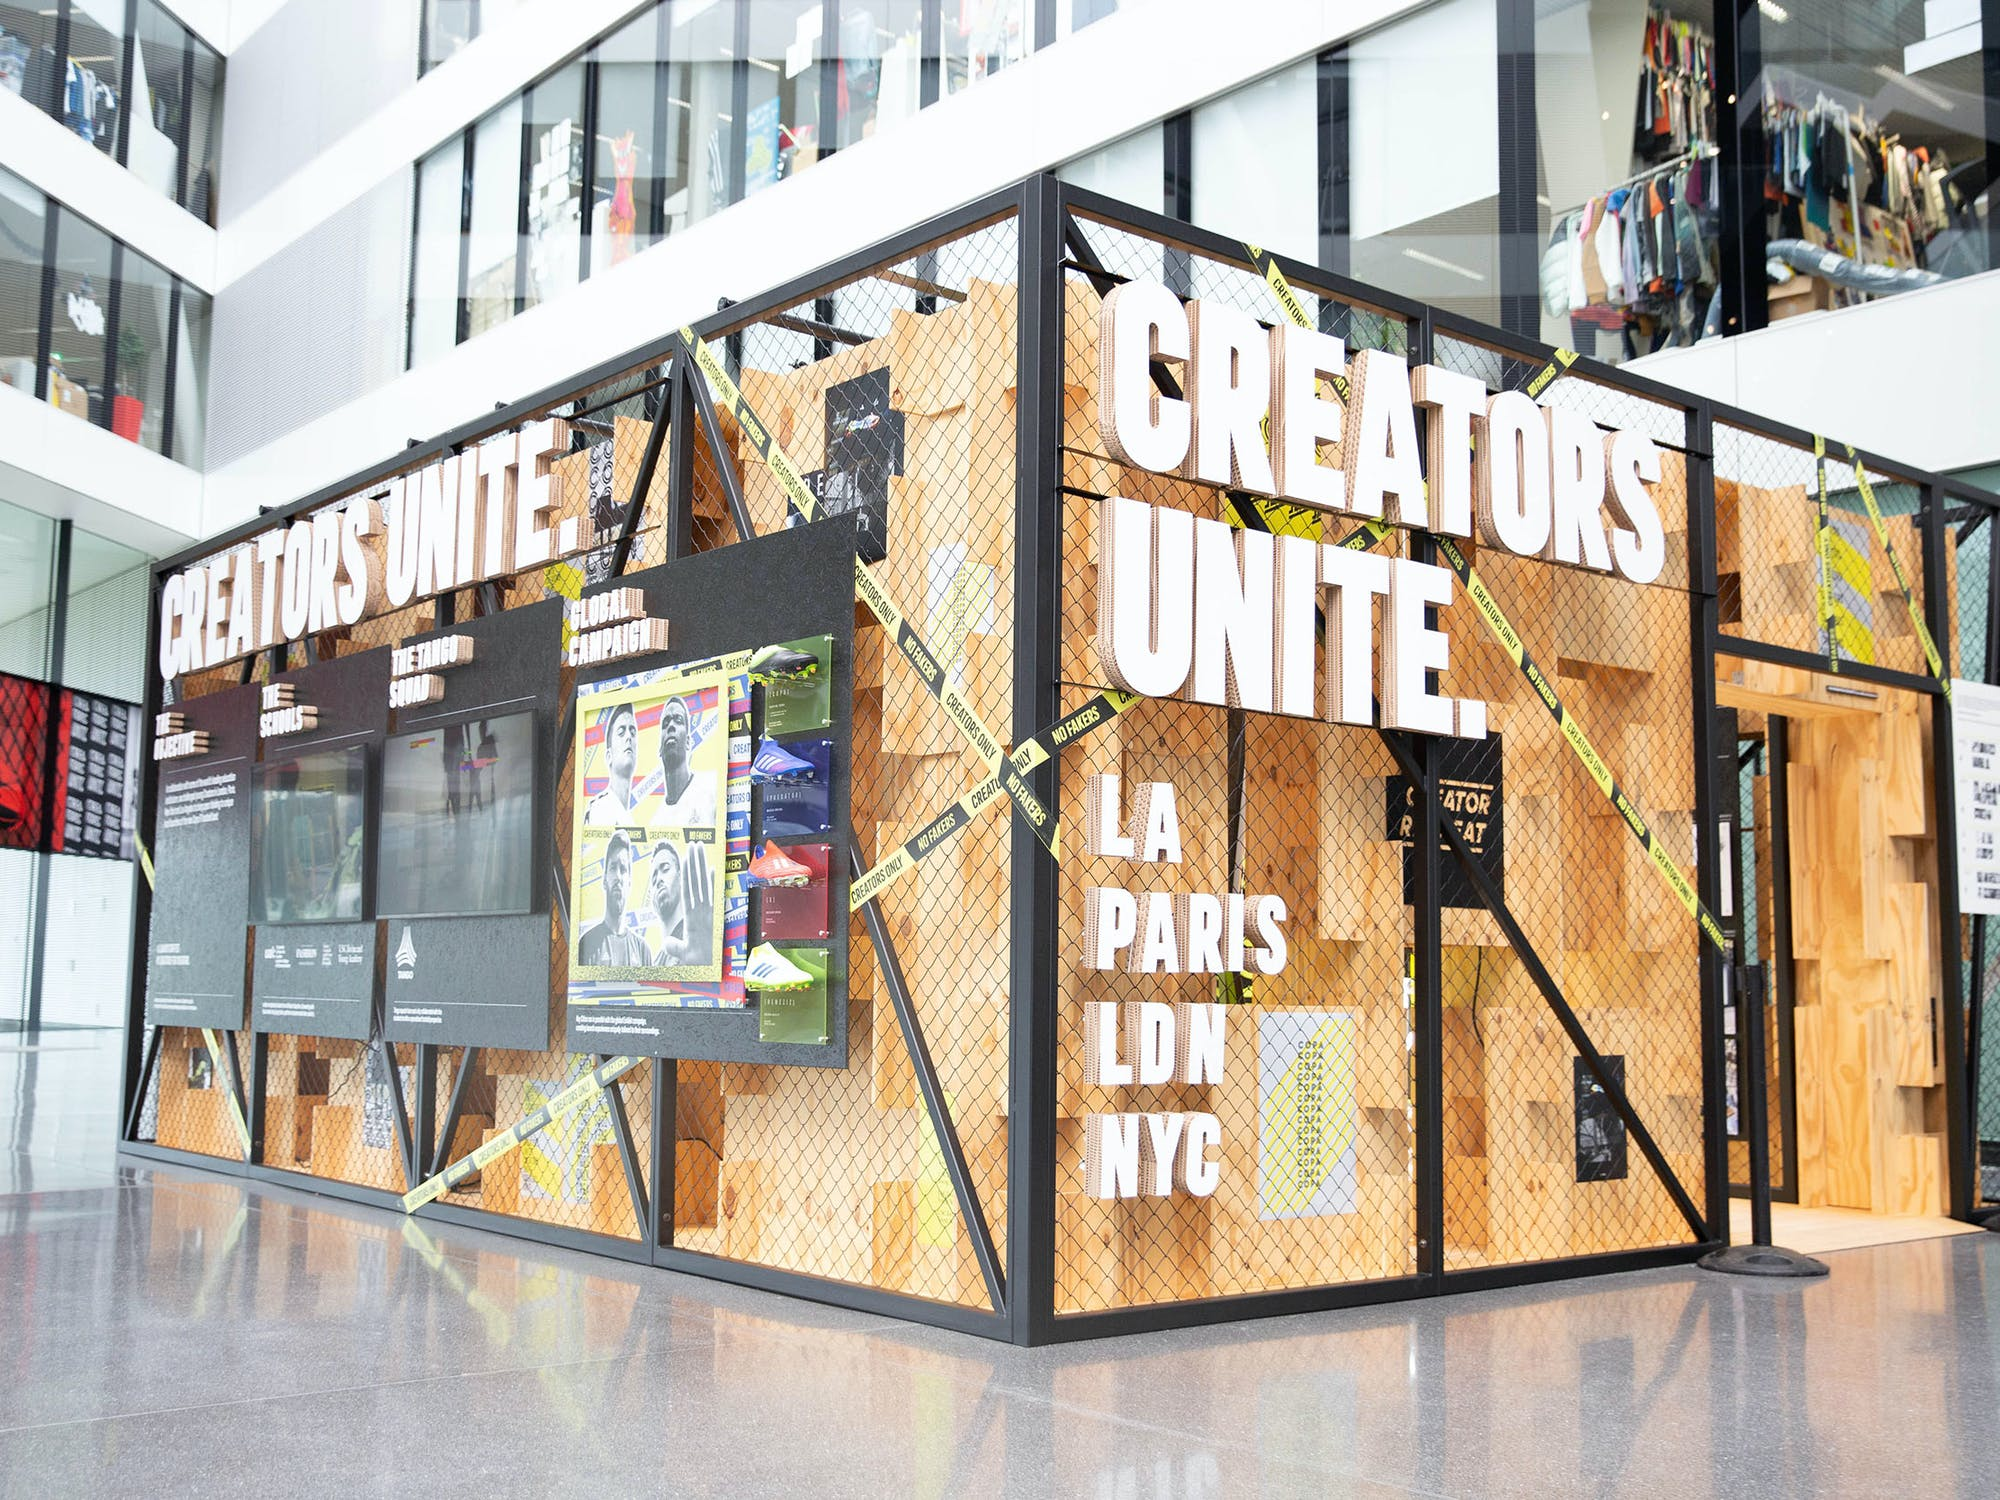 Indoor installation made of wood and steel with sign Creators Unite.